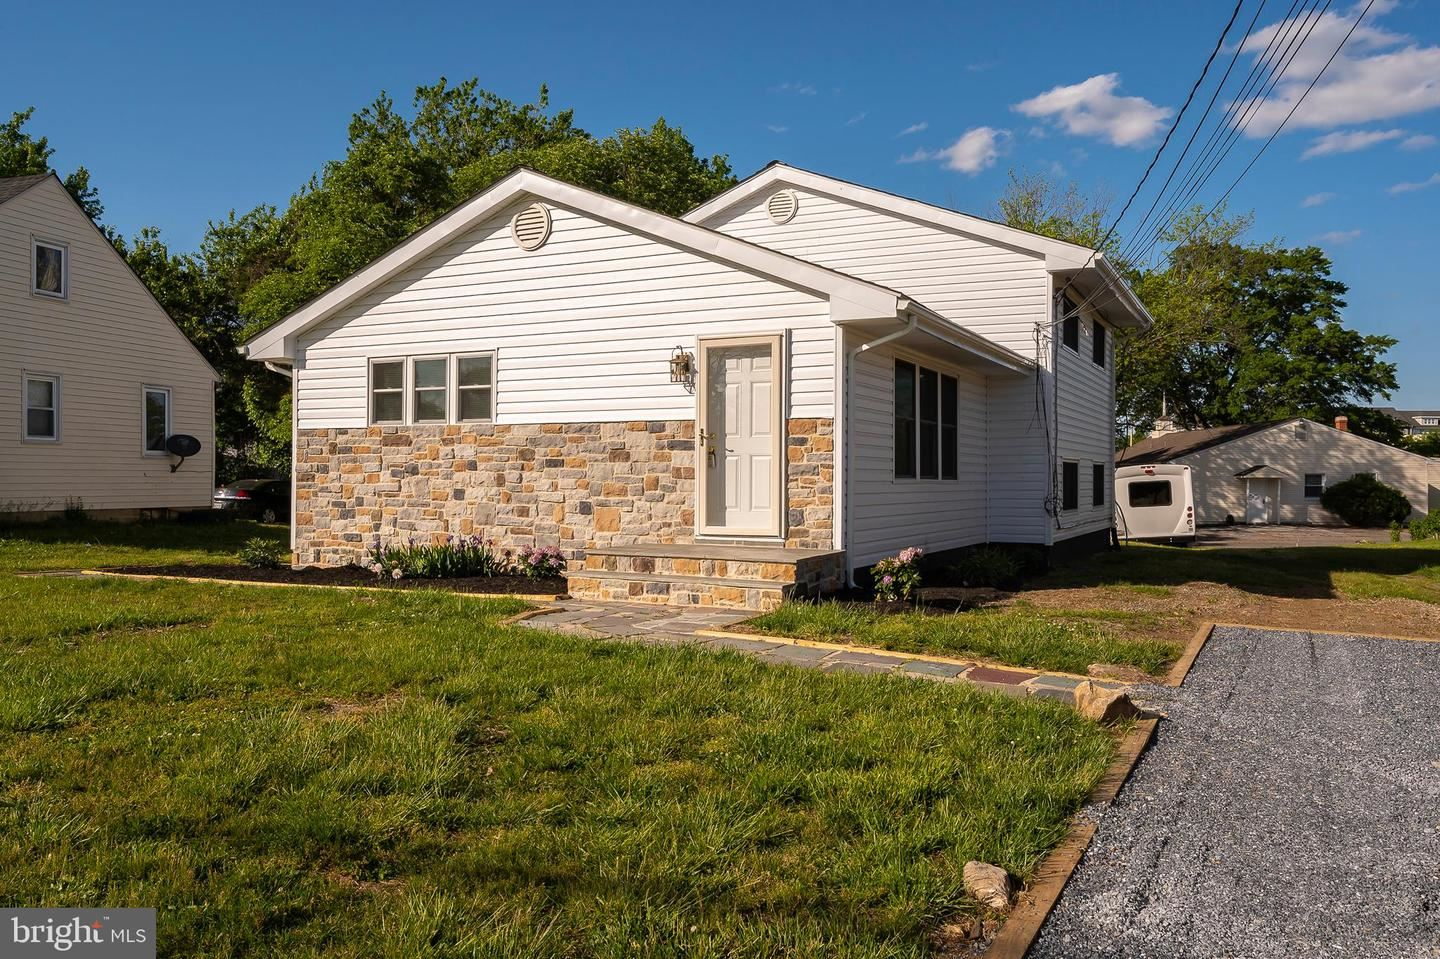 1952 FOREST DR, Annapolis, MD 21401 - MLS#: MDAA466736